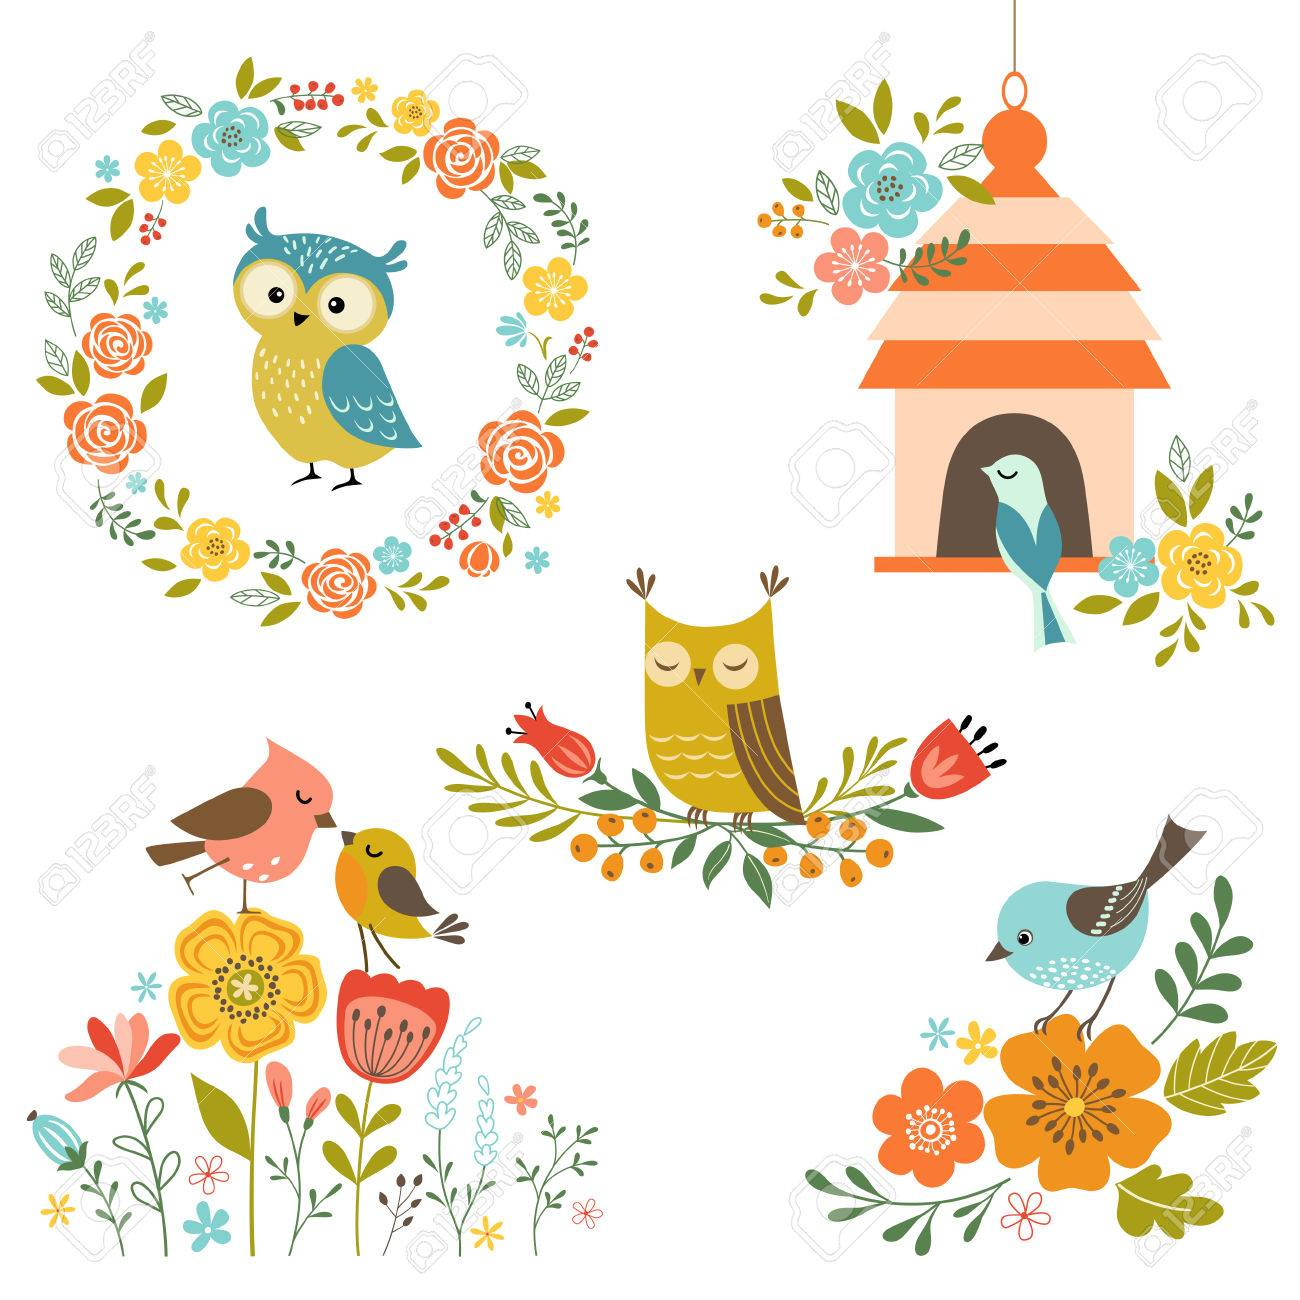 Set of design elements with flowers and birds. - 41214414